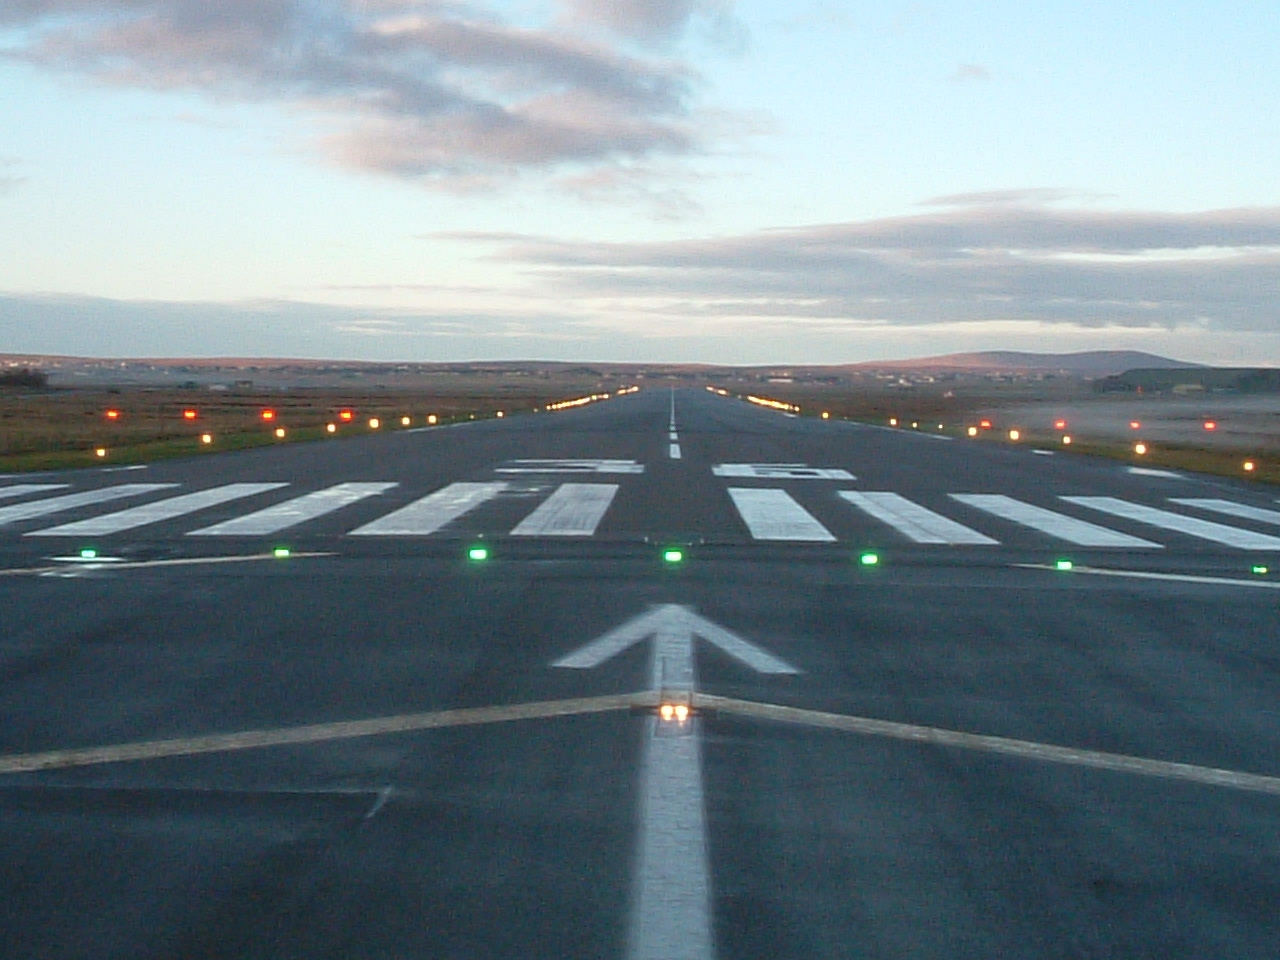 File:Stornoway Airport Runway.jpg - Wikipedia, the free encyclopedia